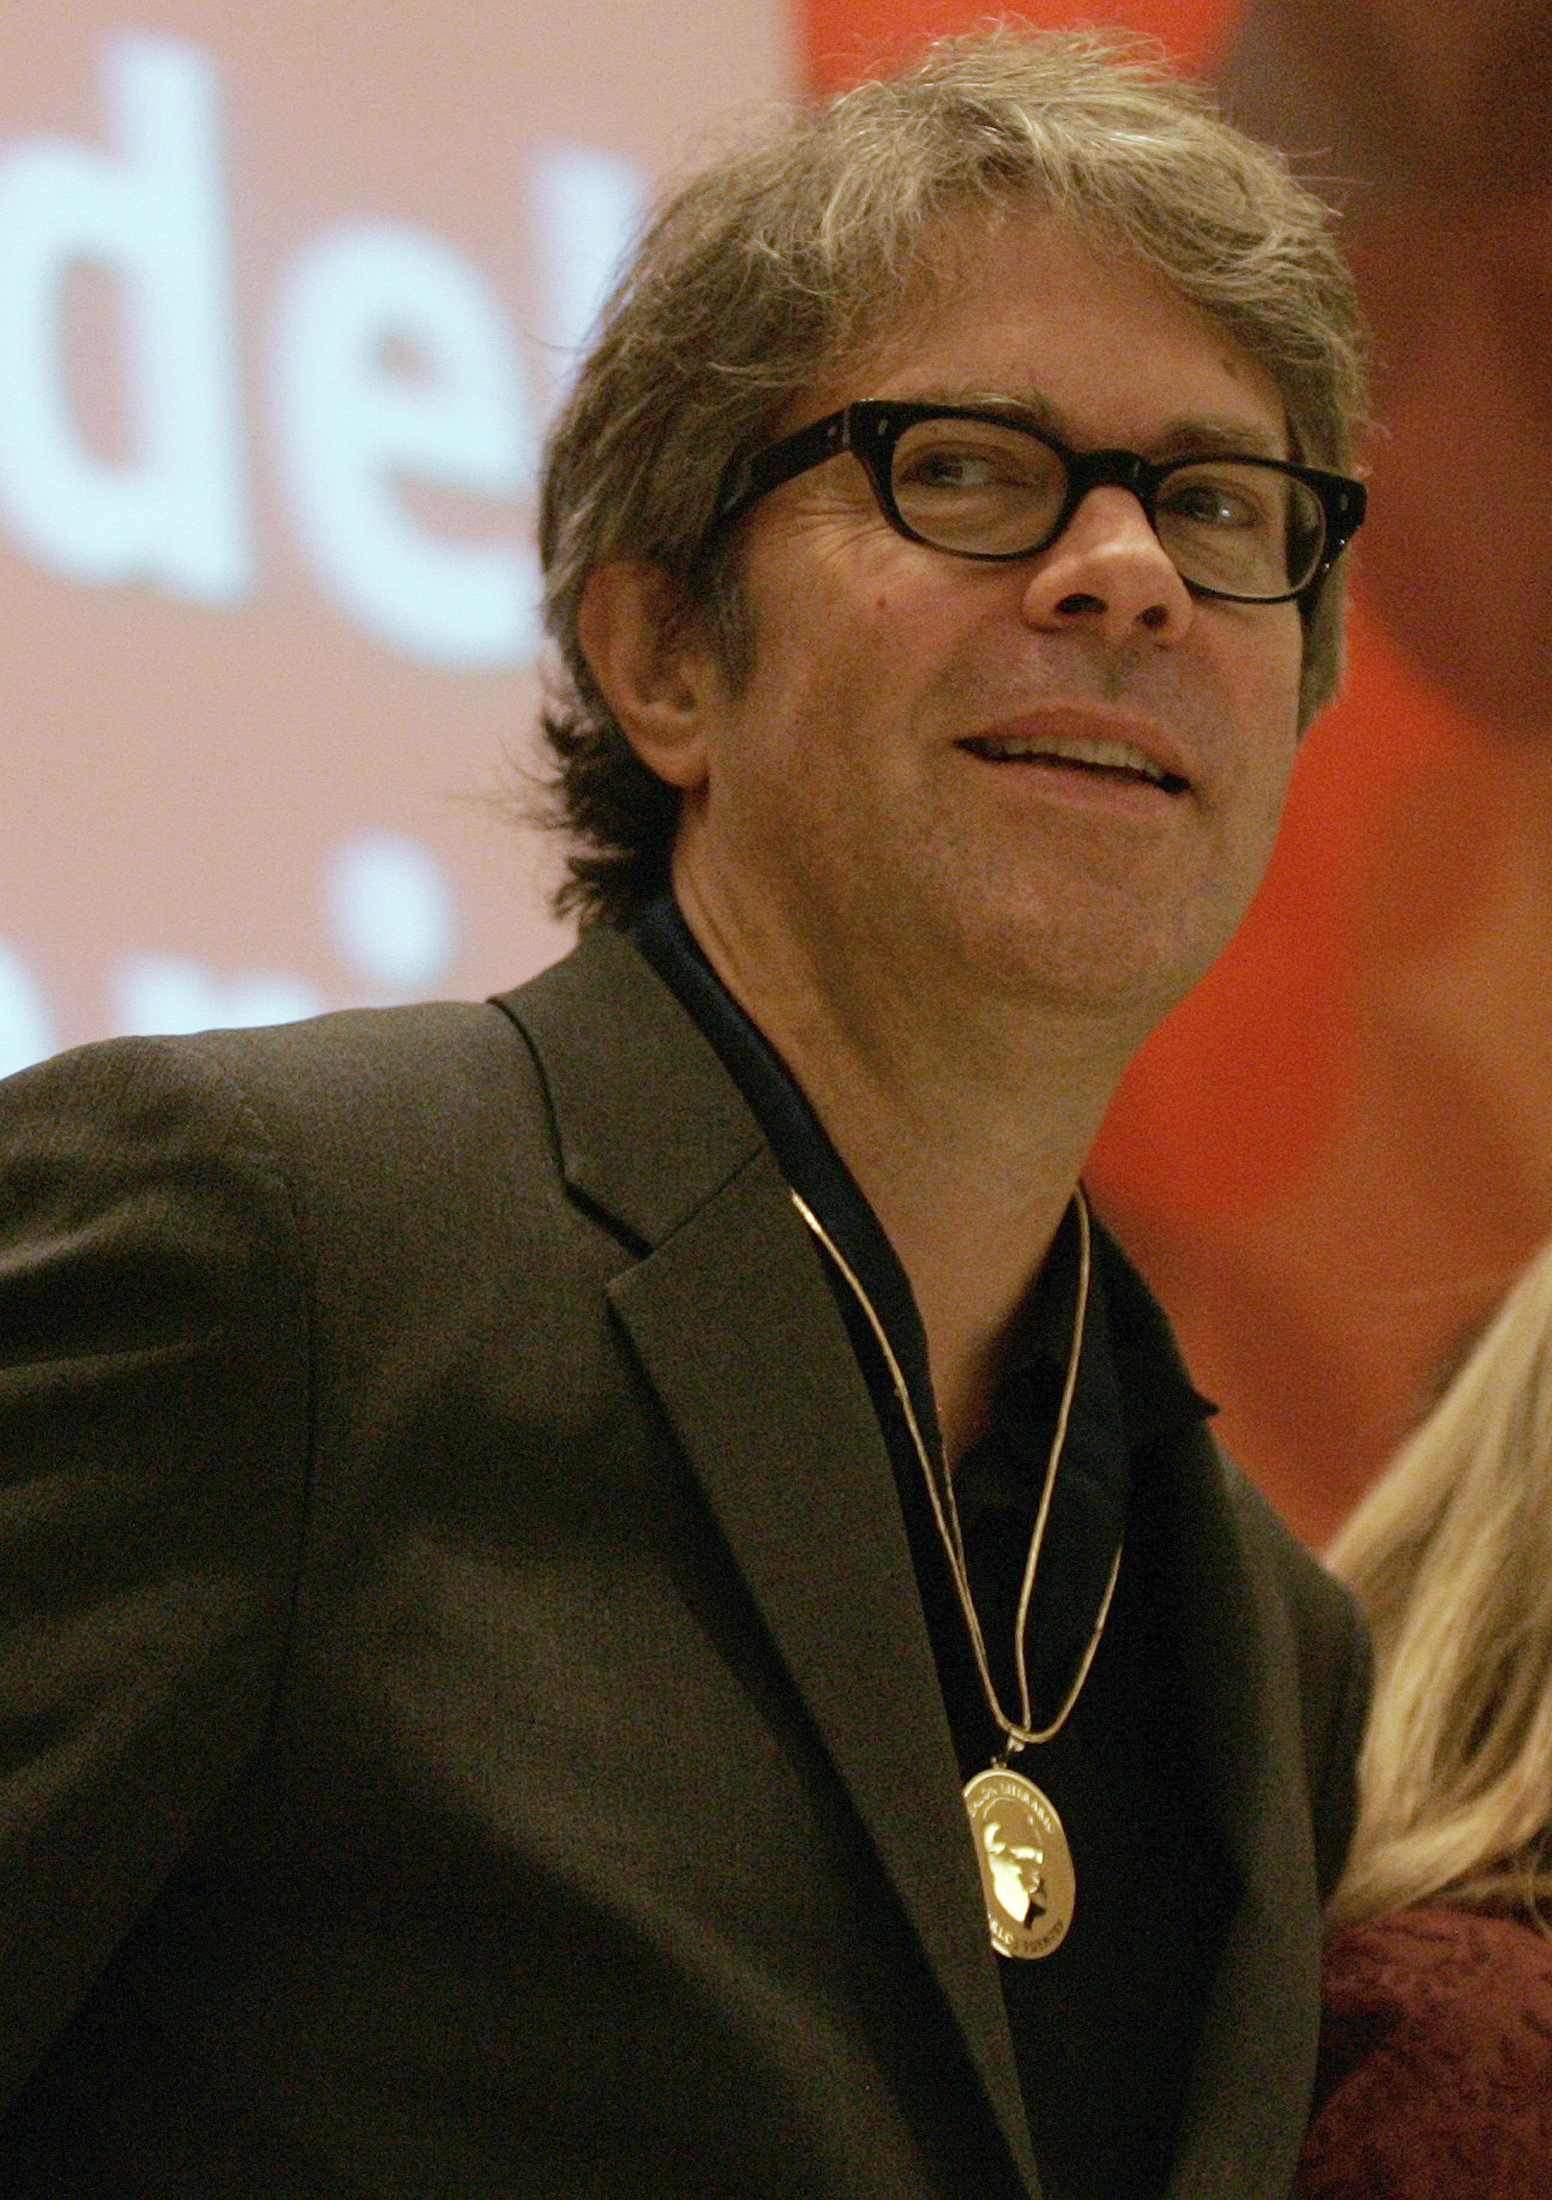 U.S. novelist and essayist Jonathan Franzen looks on after being awarded with the Carlos Fuentes Literary Salon medal at the International Book Fair (FIL) in Guadalajara November 25, 2012.